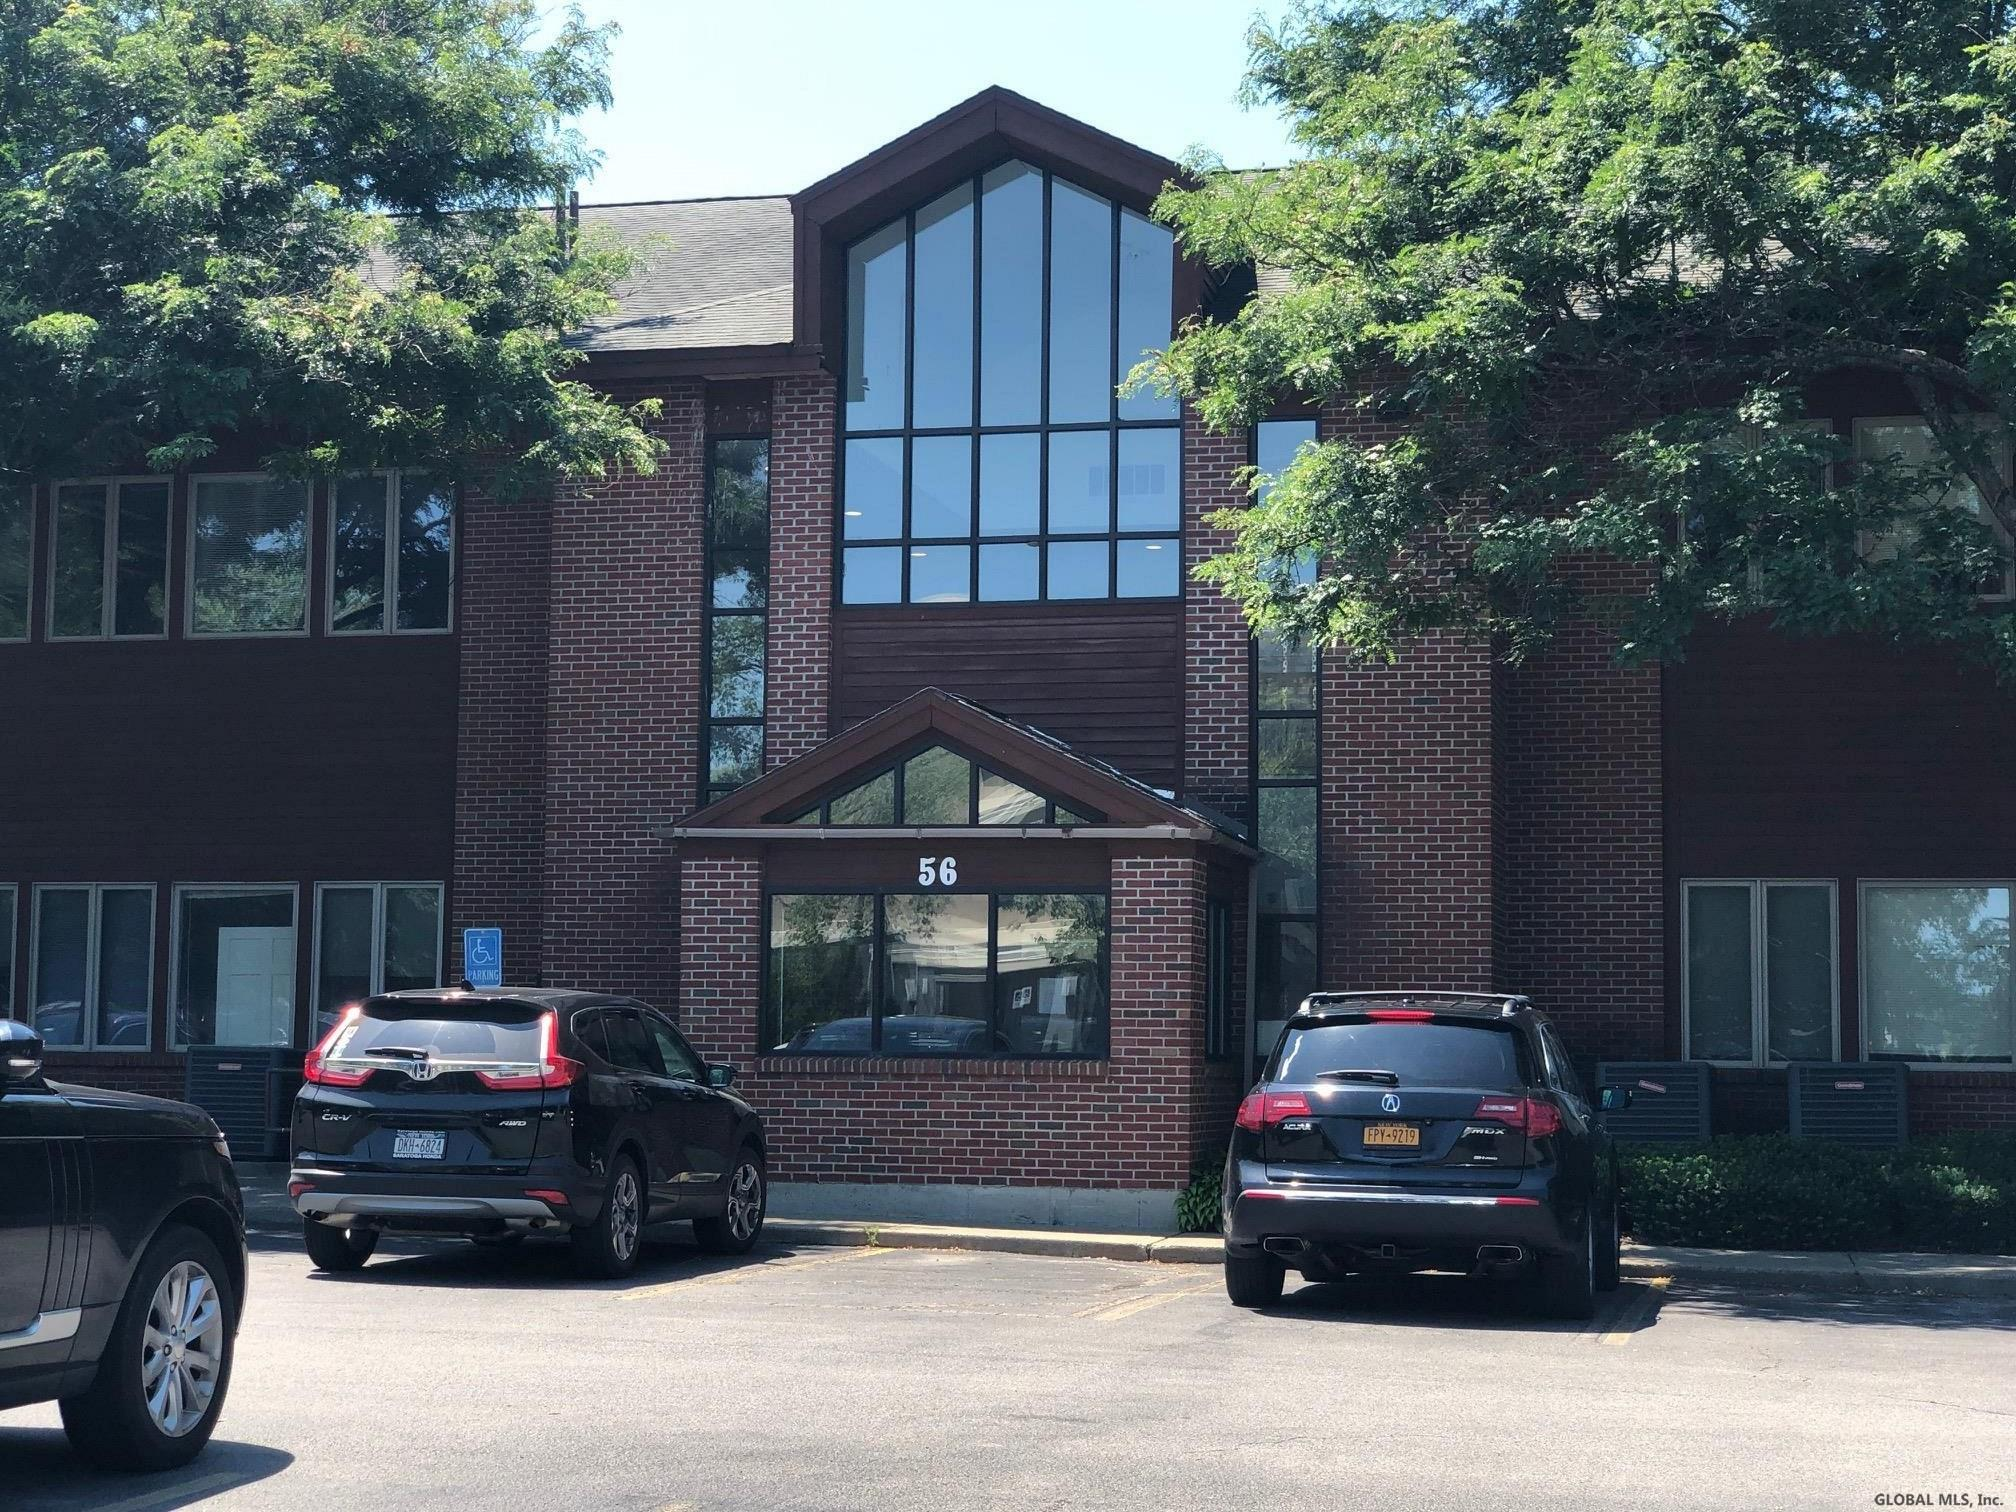 56 CLIFTON COUNTRY RD, Clifton Park, New York 12065-3878, ,Commercial,For Sale,56 CLIFTON COUNTRY RD,202022320